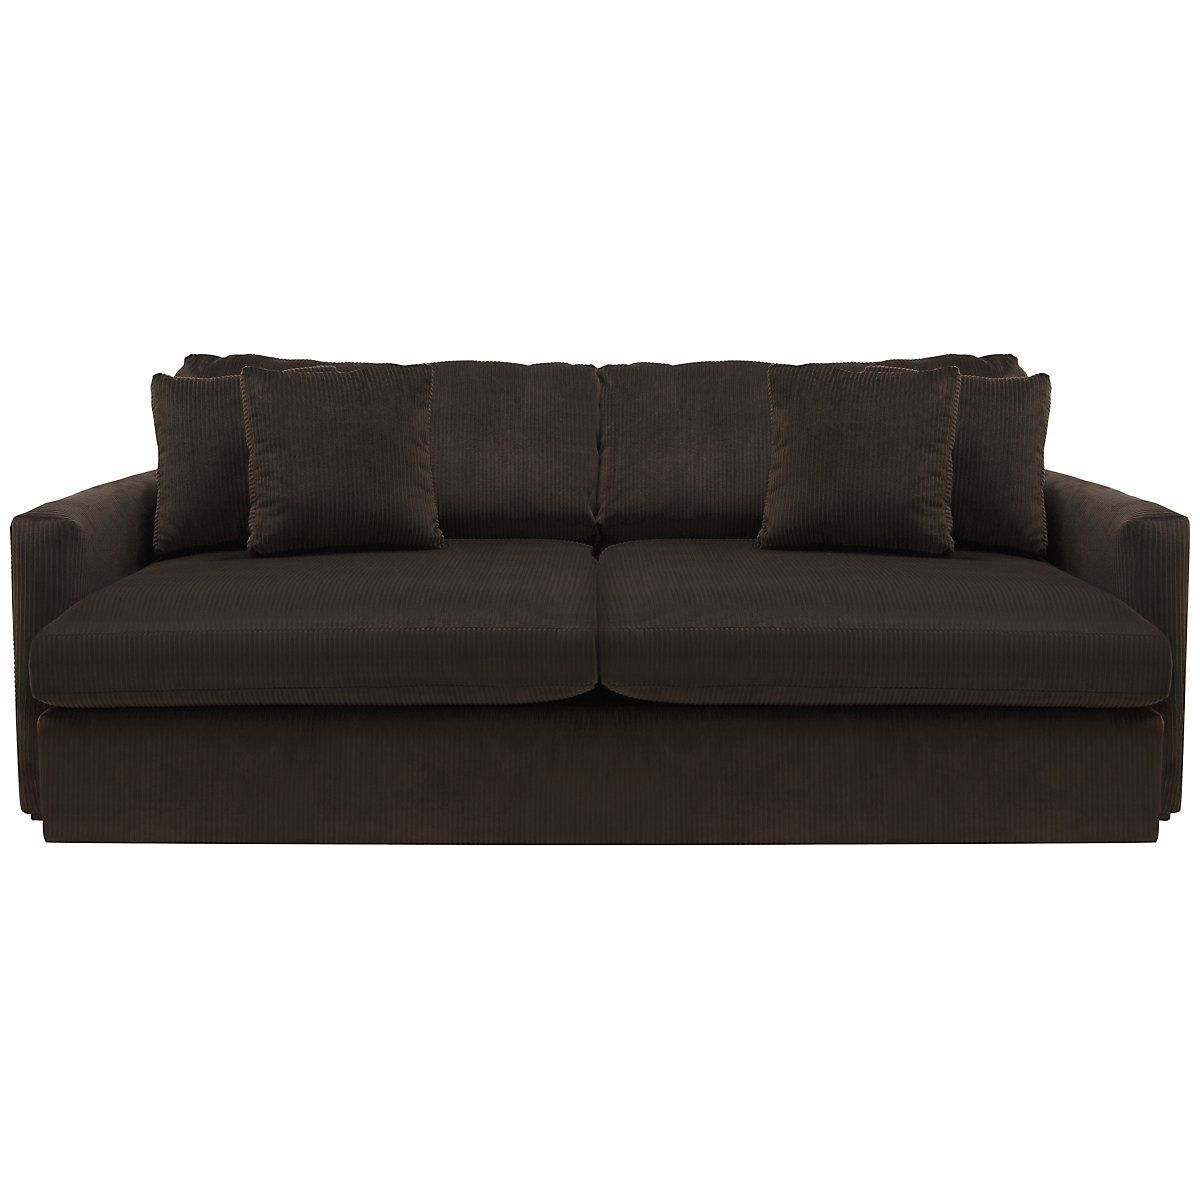 dark brown sectional couch – monarchdesign.co